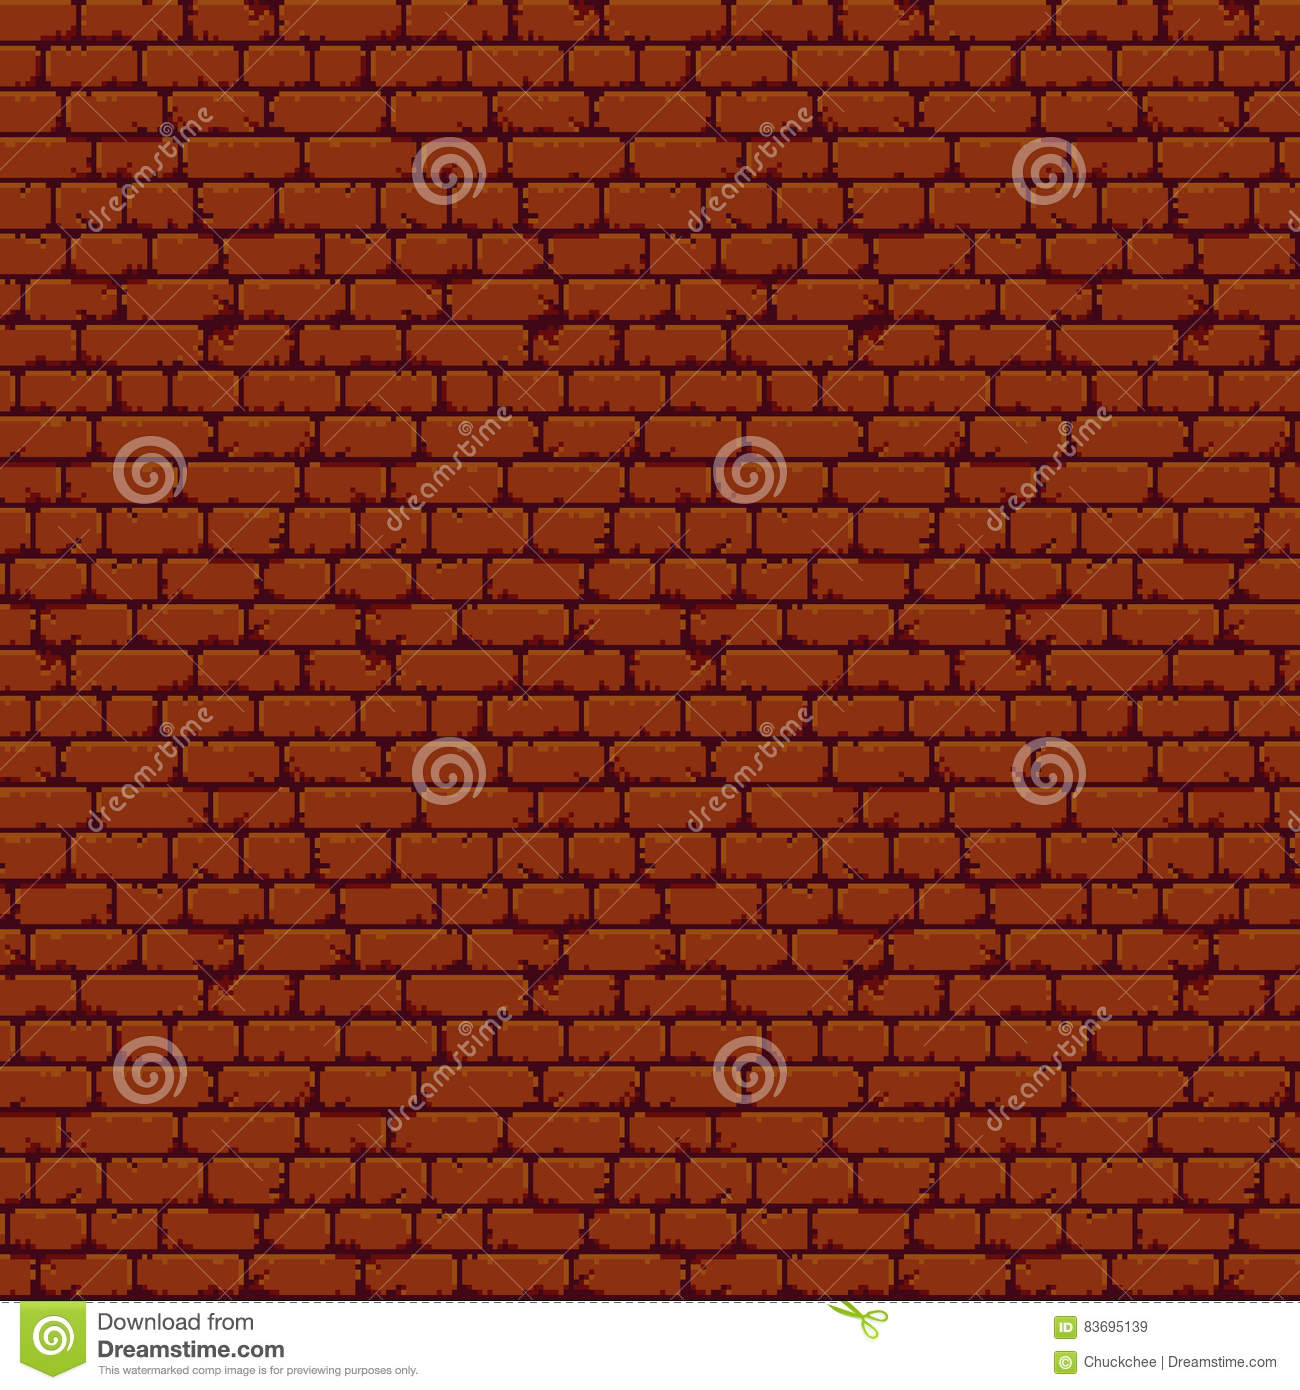 Pixel Brick Wall Stock Vector. Illustration Of Background